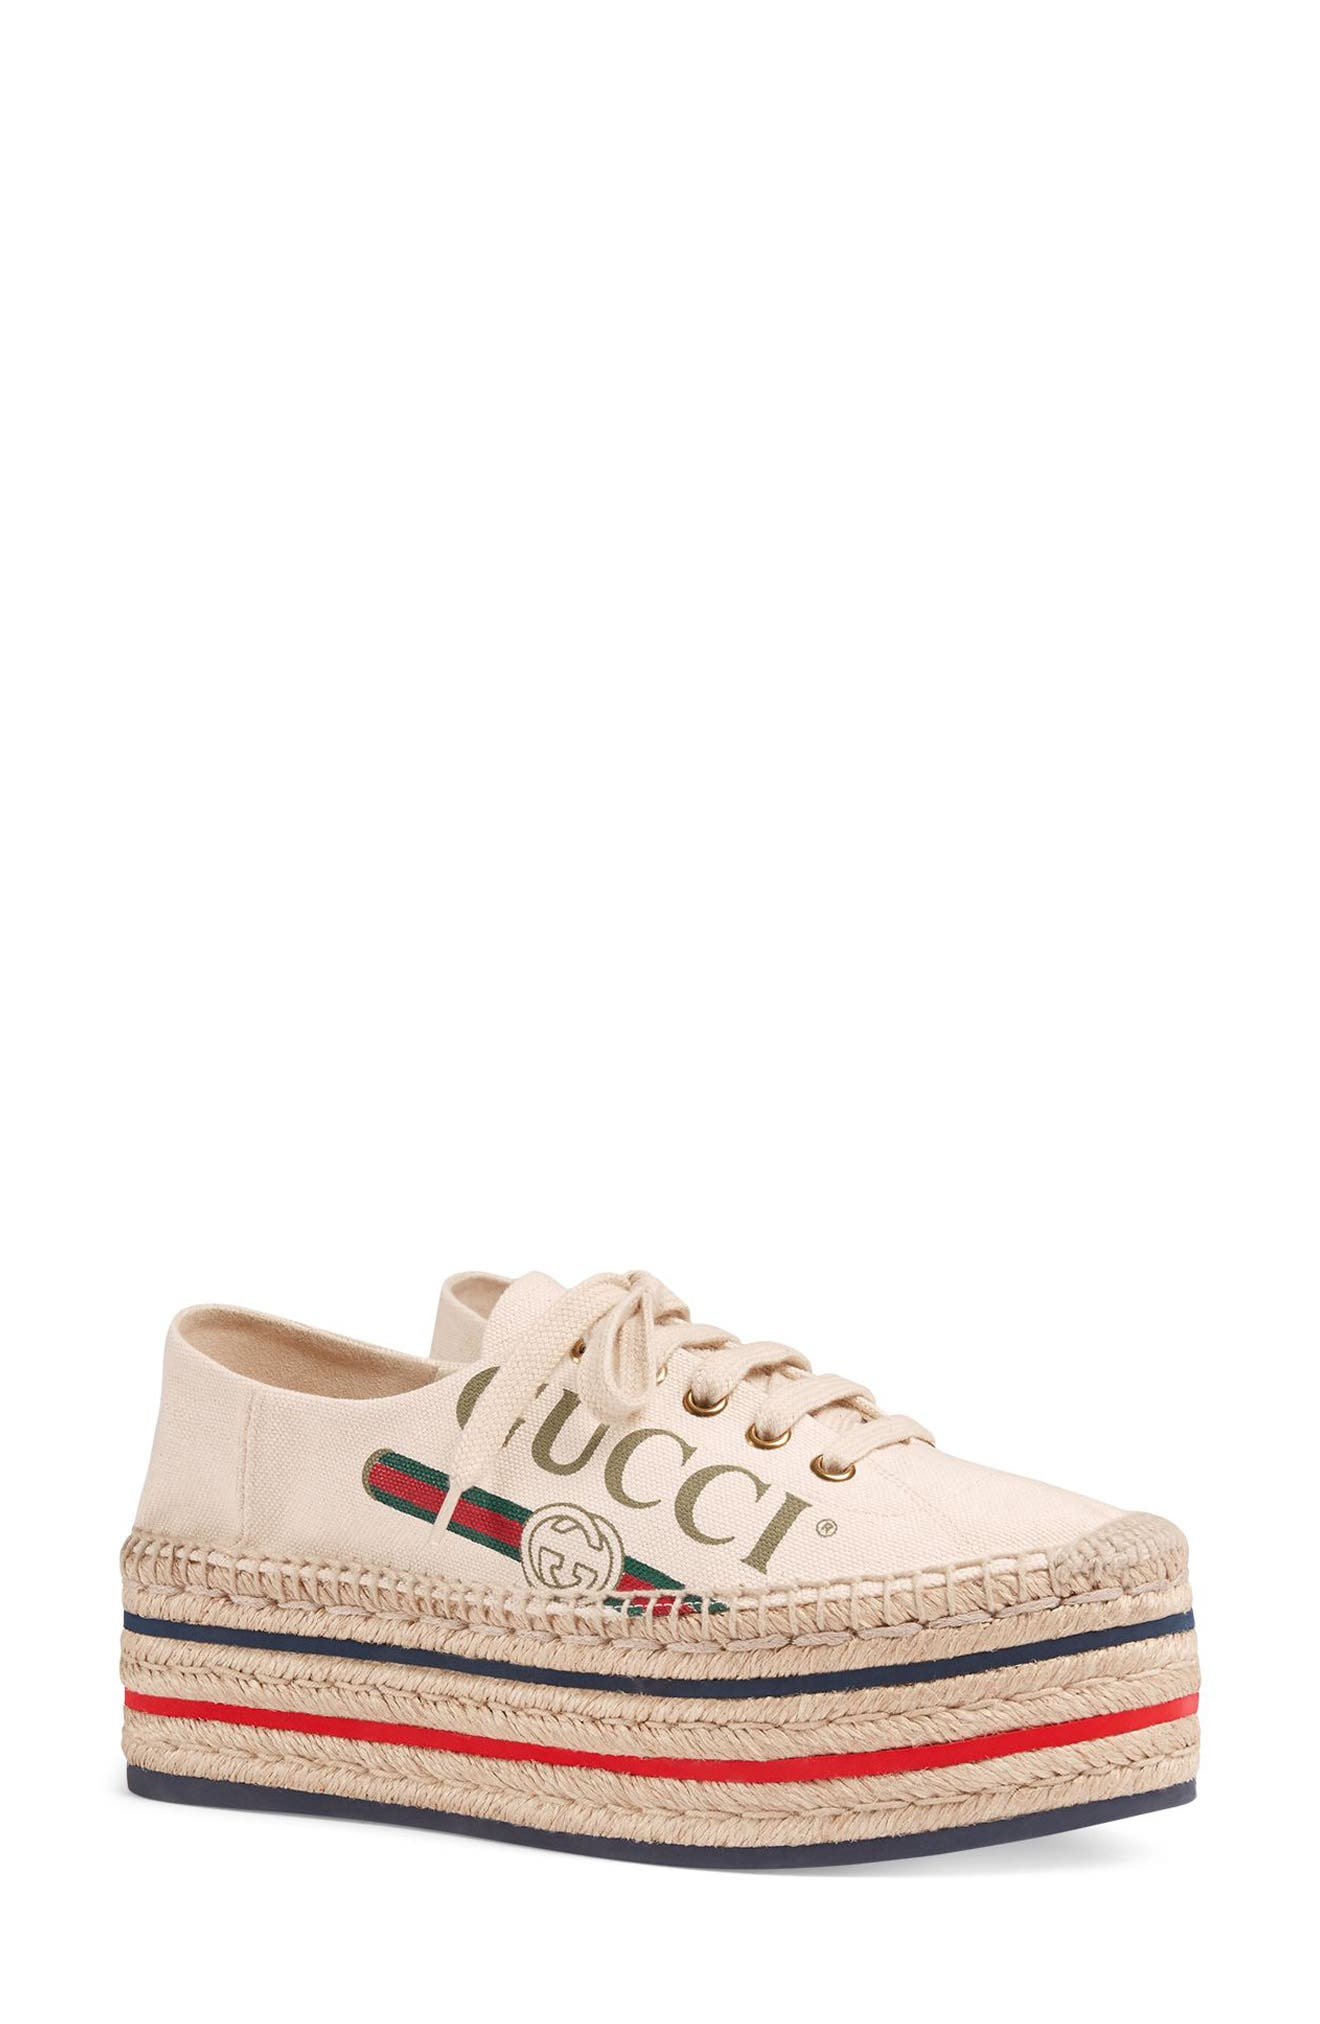 GUCCI, Convertible Logo Espadrille, Main thumbnail 1, color, IVORY